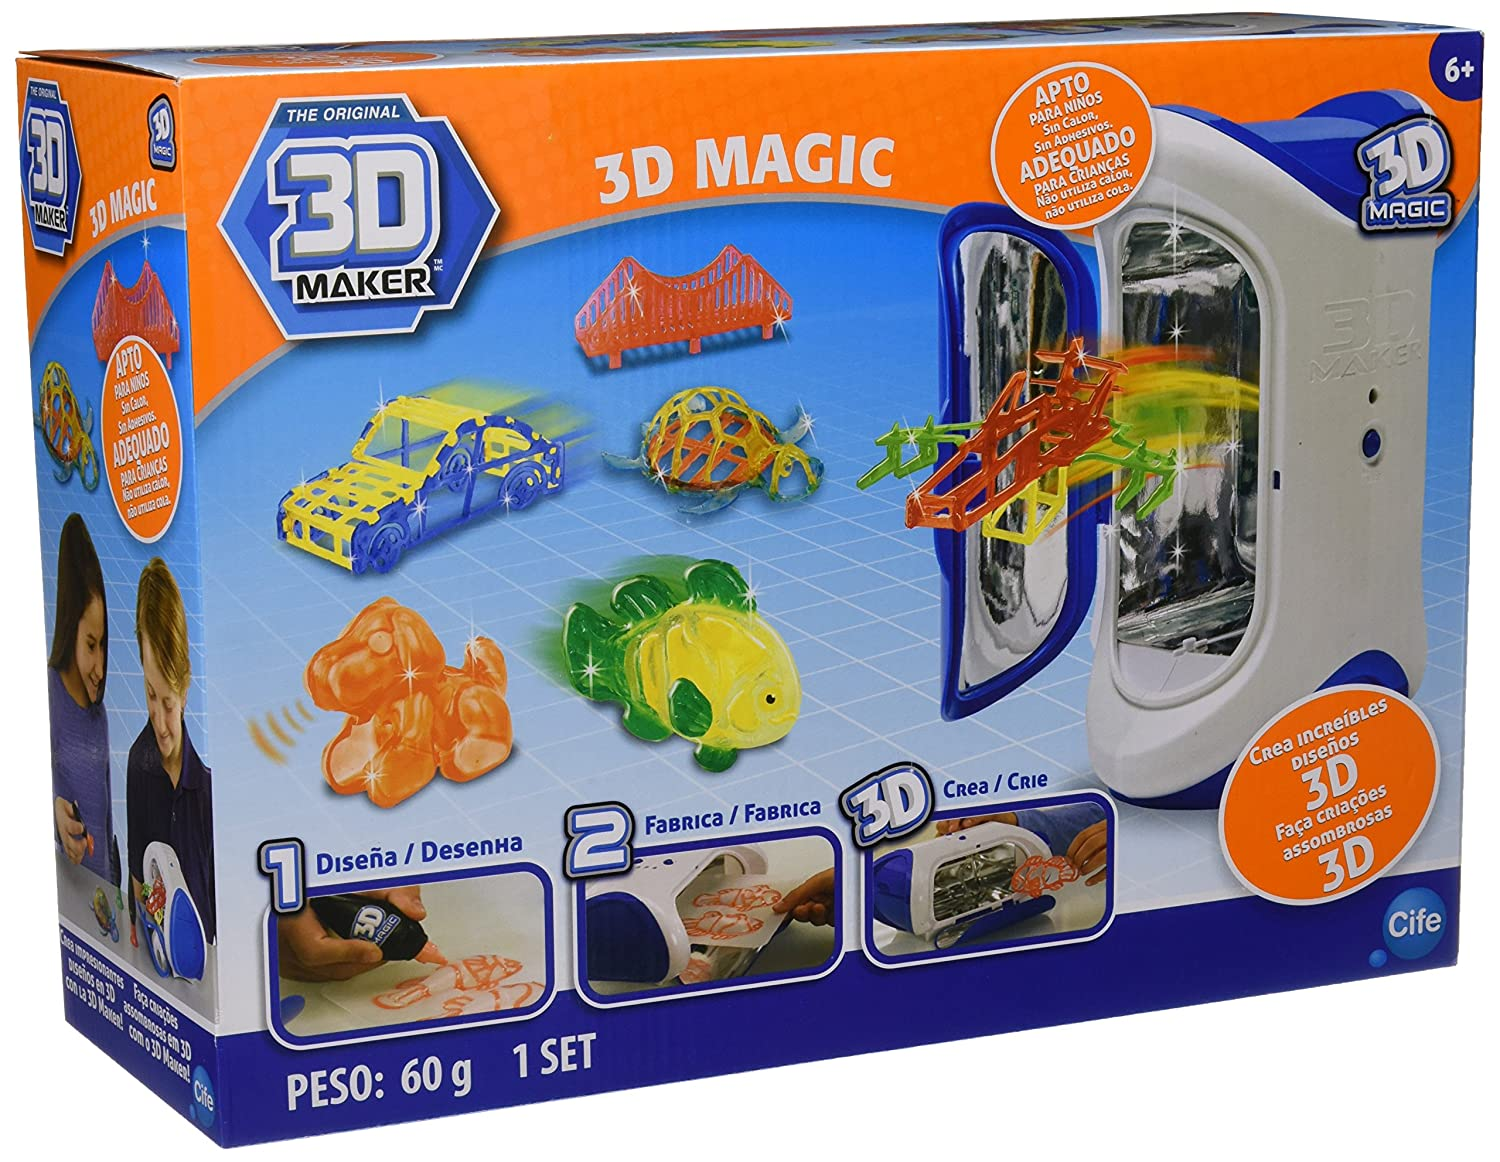 Amazon.com: Cife Irwin RX Ltd 40104 – Printer – Magic 3D ...